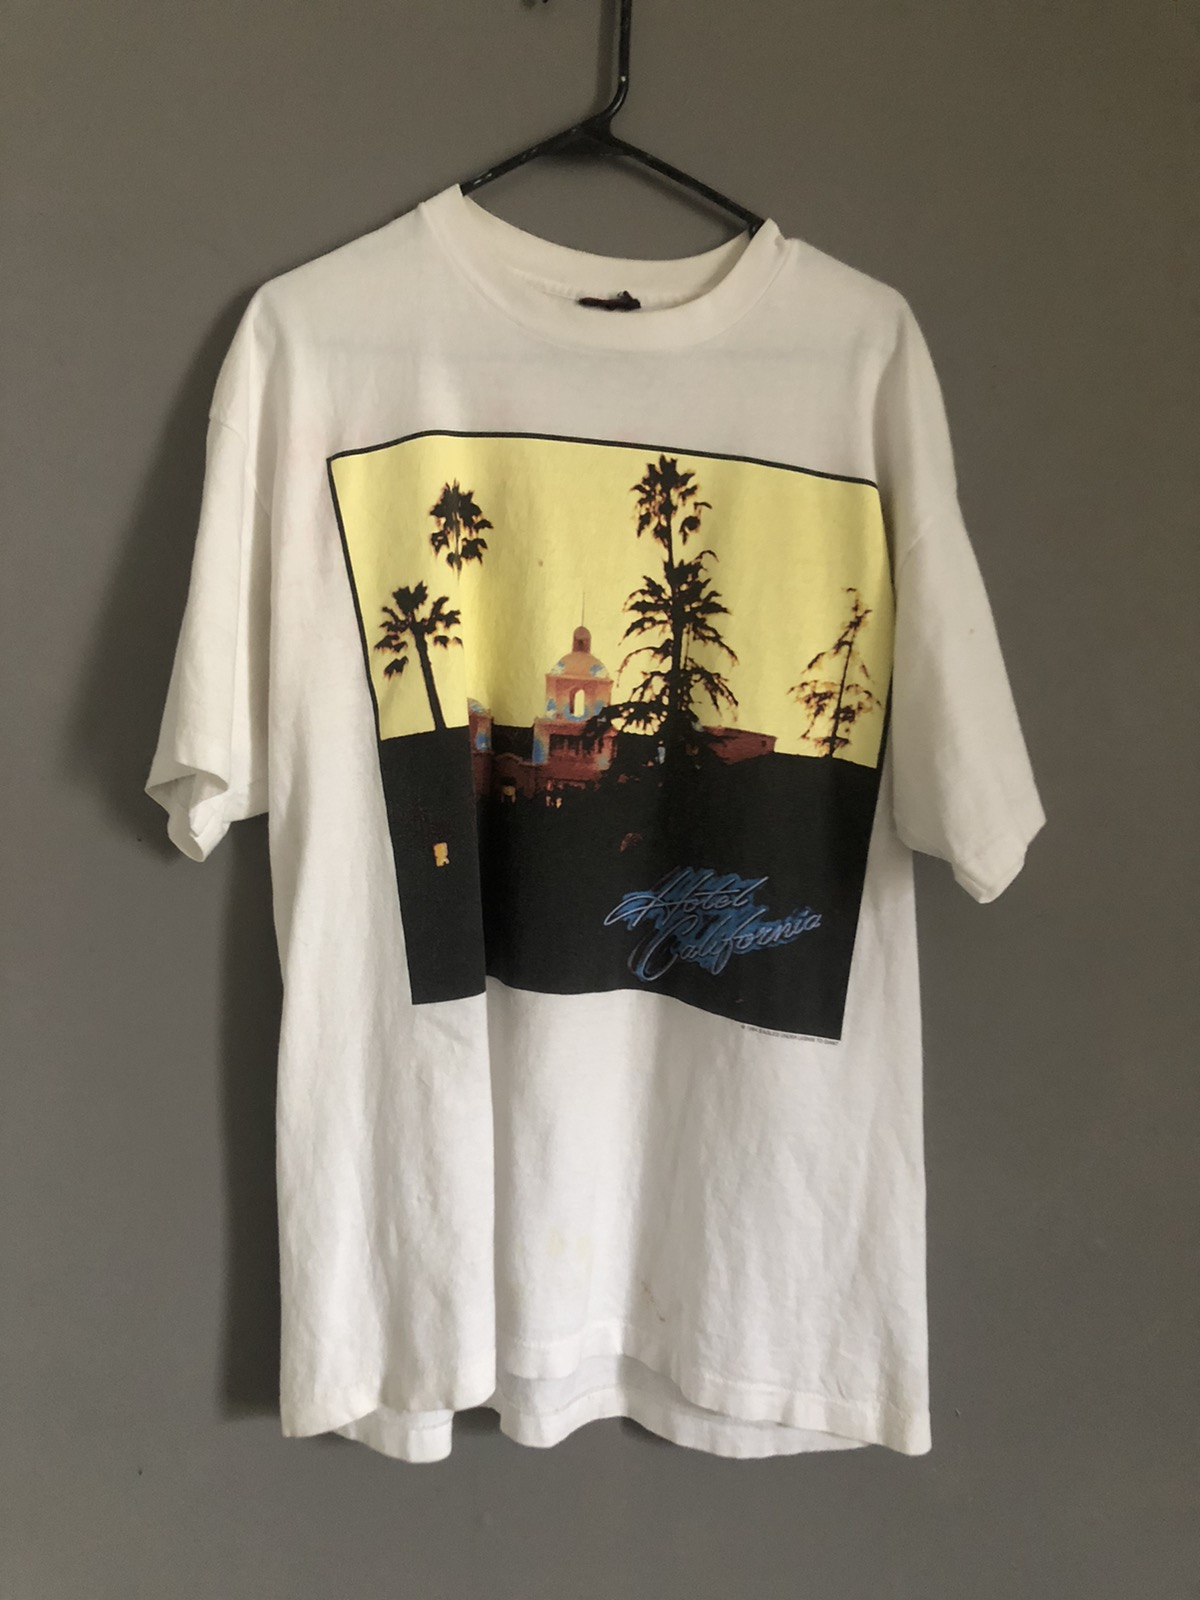 Made in USA Vintage Concert Shirt Fits Like XL Vintage Band Tee 1995 Eagles World Tour T-shirt